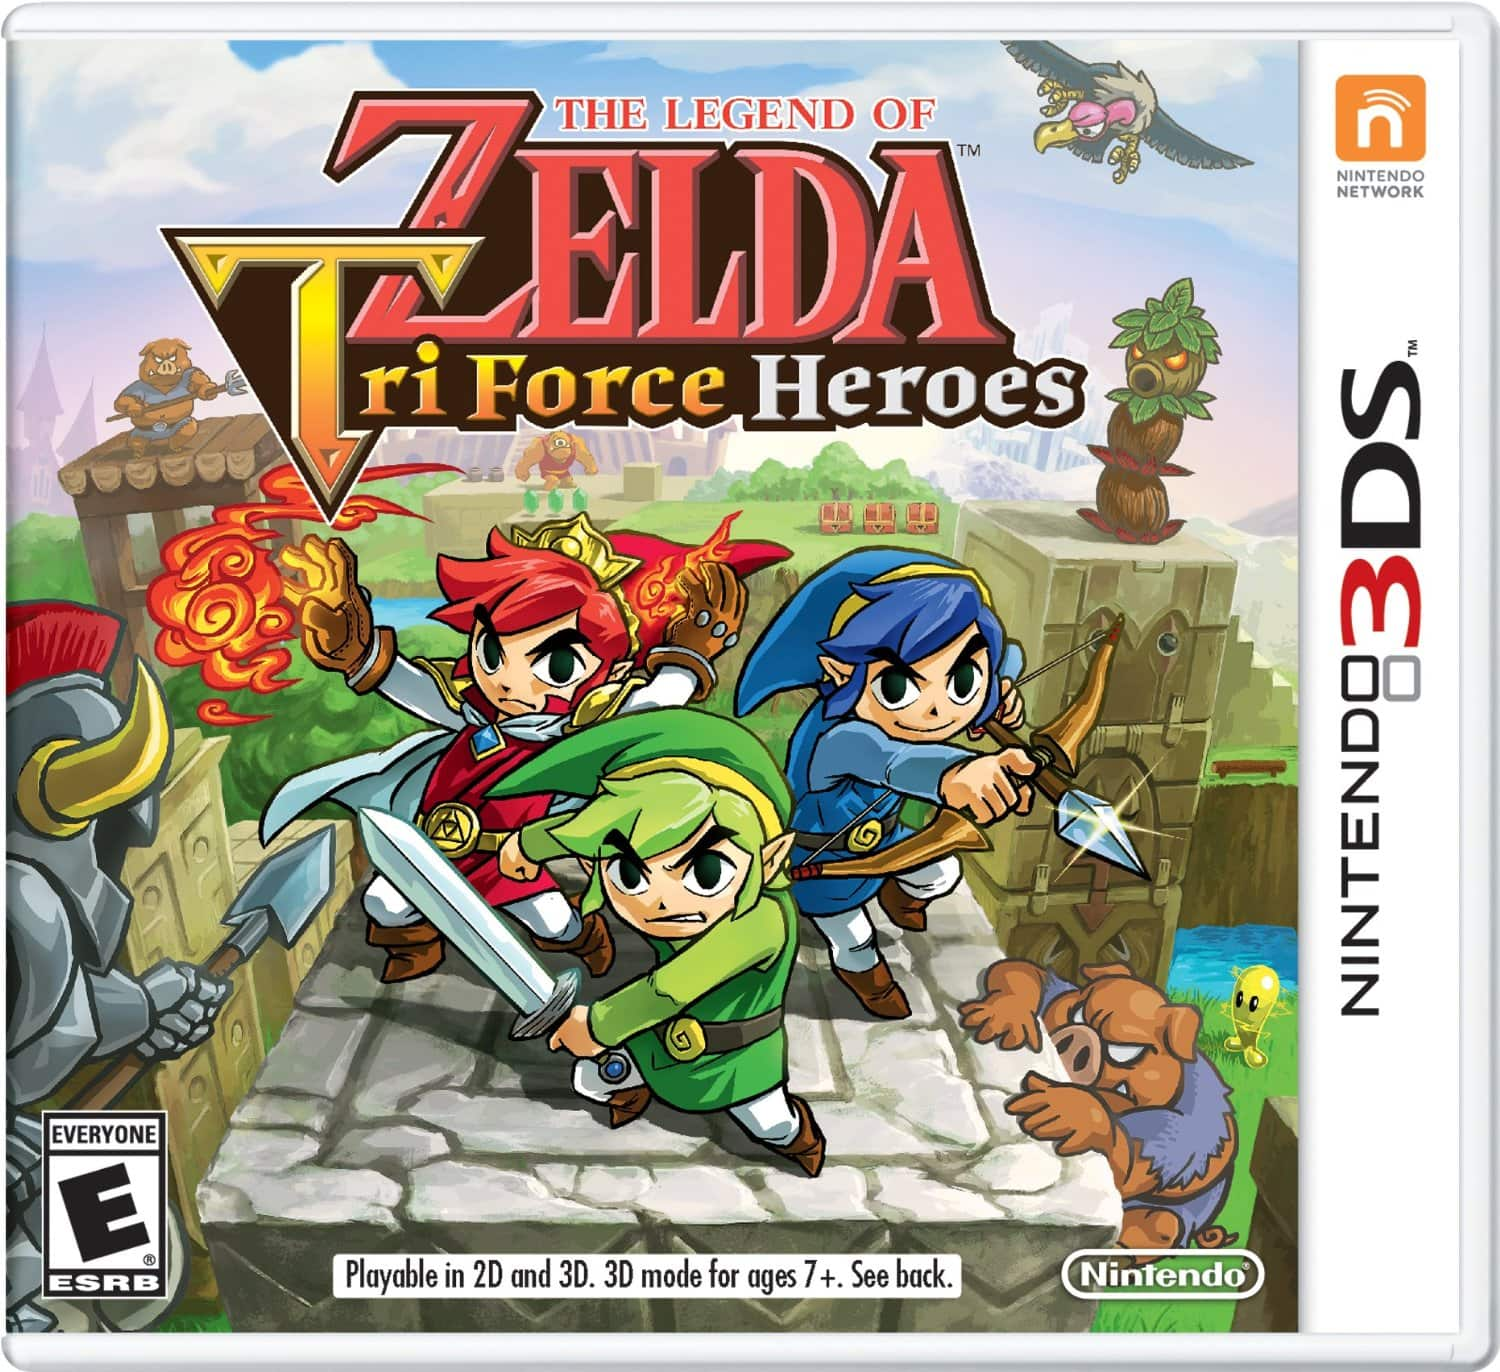 Pre-order The Legend of Zelda: TriForce Heroes - 3DS + $15+$25 Dell Promo GC's $39.99 @Dell